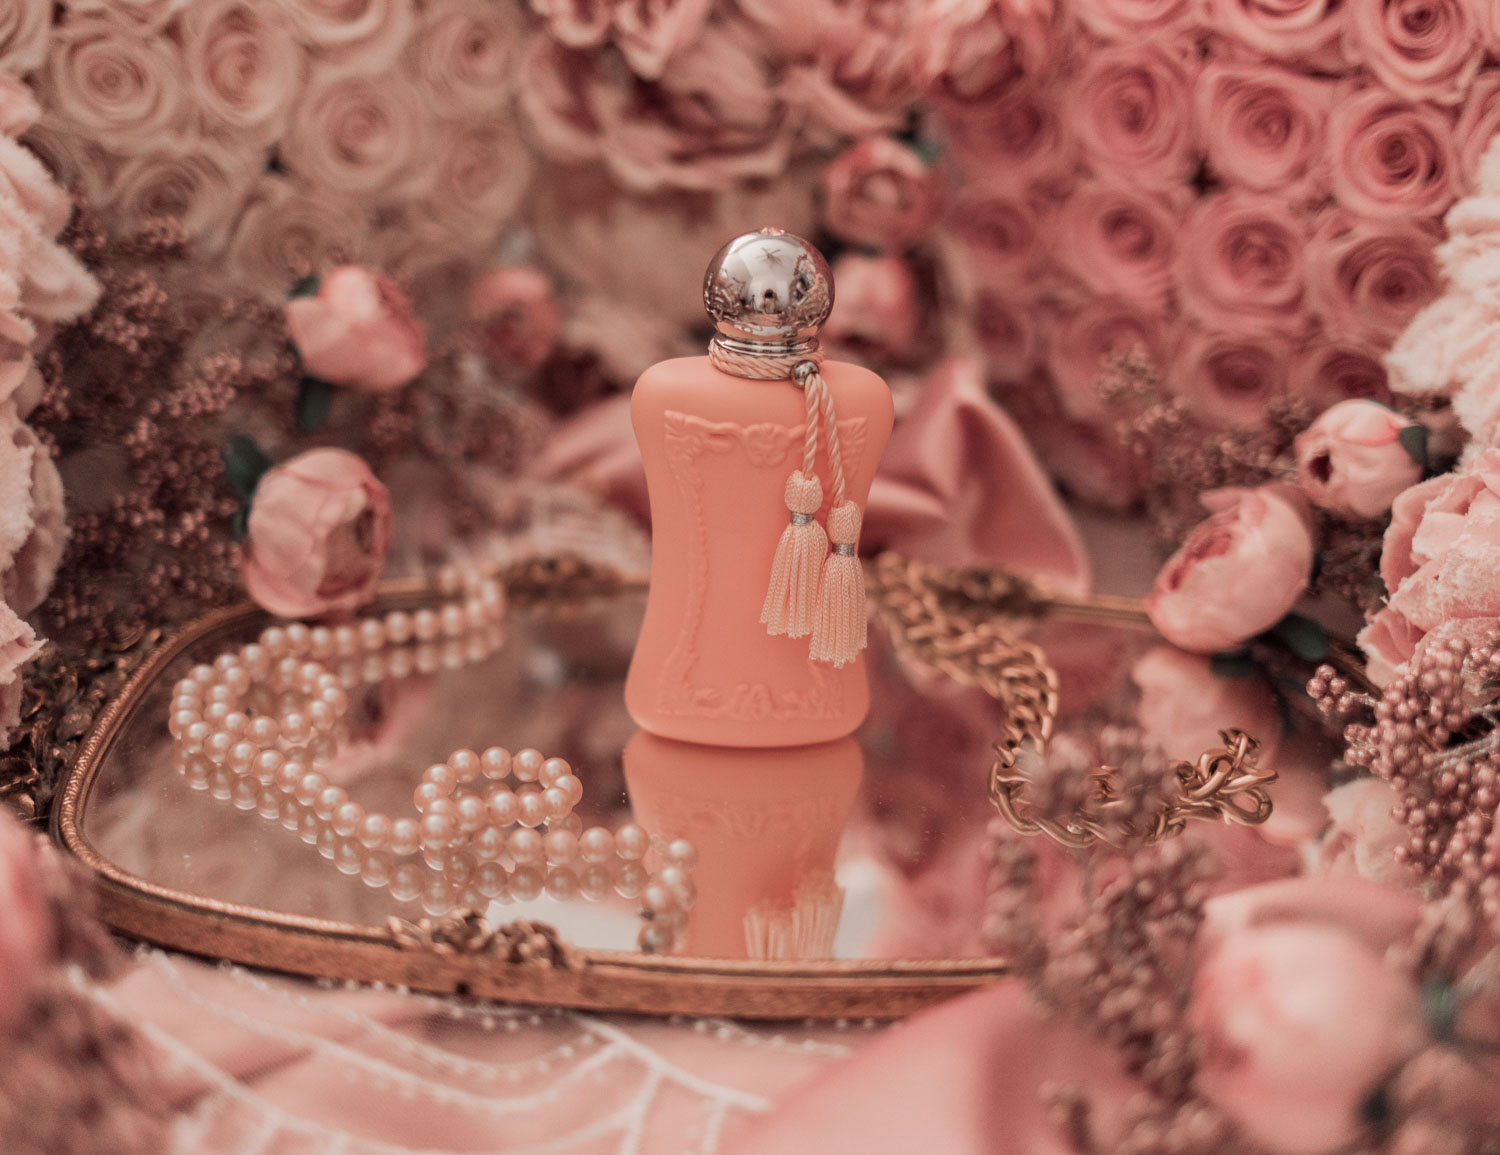 Feminine fashion and beauty blogger Elizabeth Hugen of Lizzie in Lace shares the Parfums de Marly feminine perfume collection including Cassili